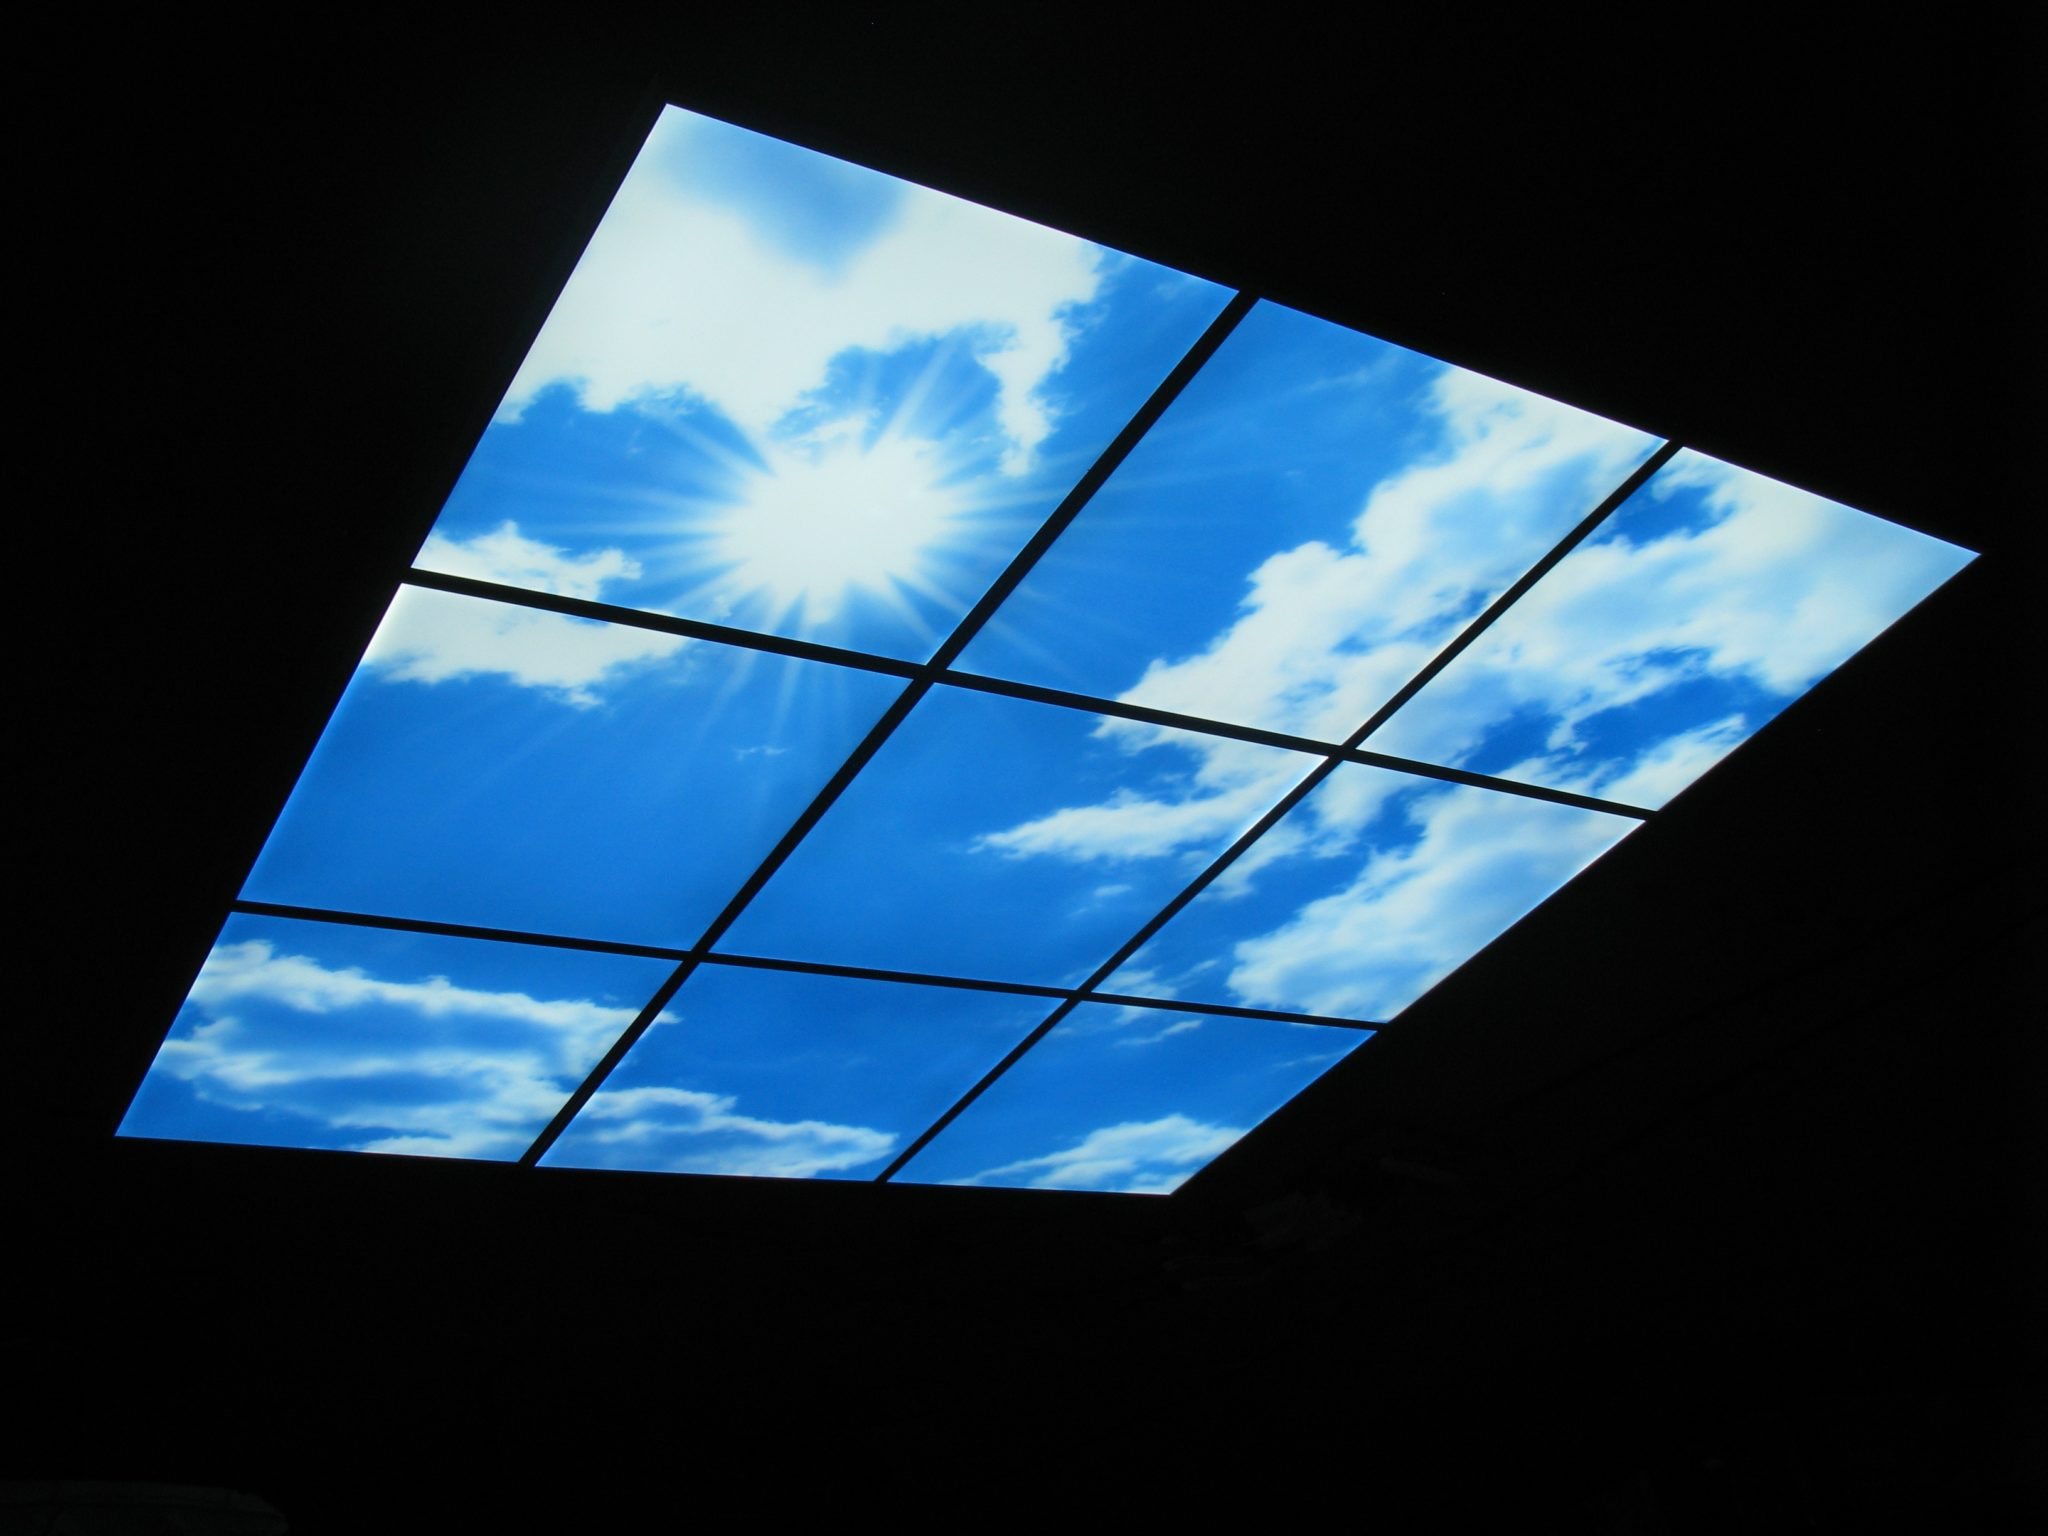 595x595 Led Sky Panel Ceiling Architectural Lighting